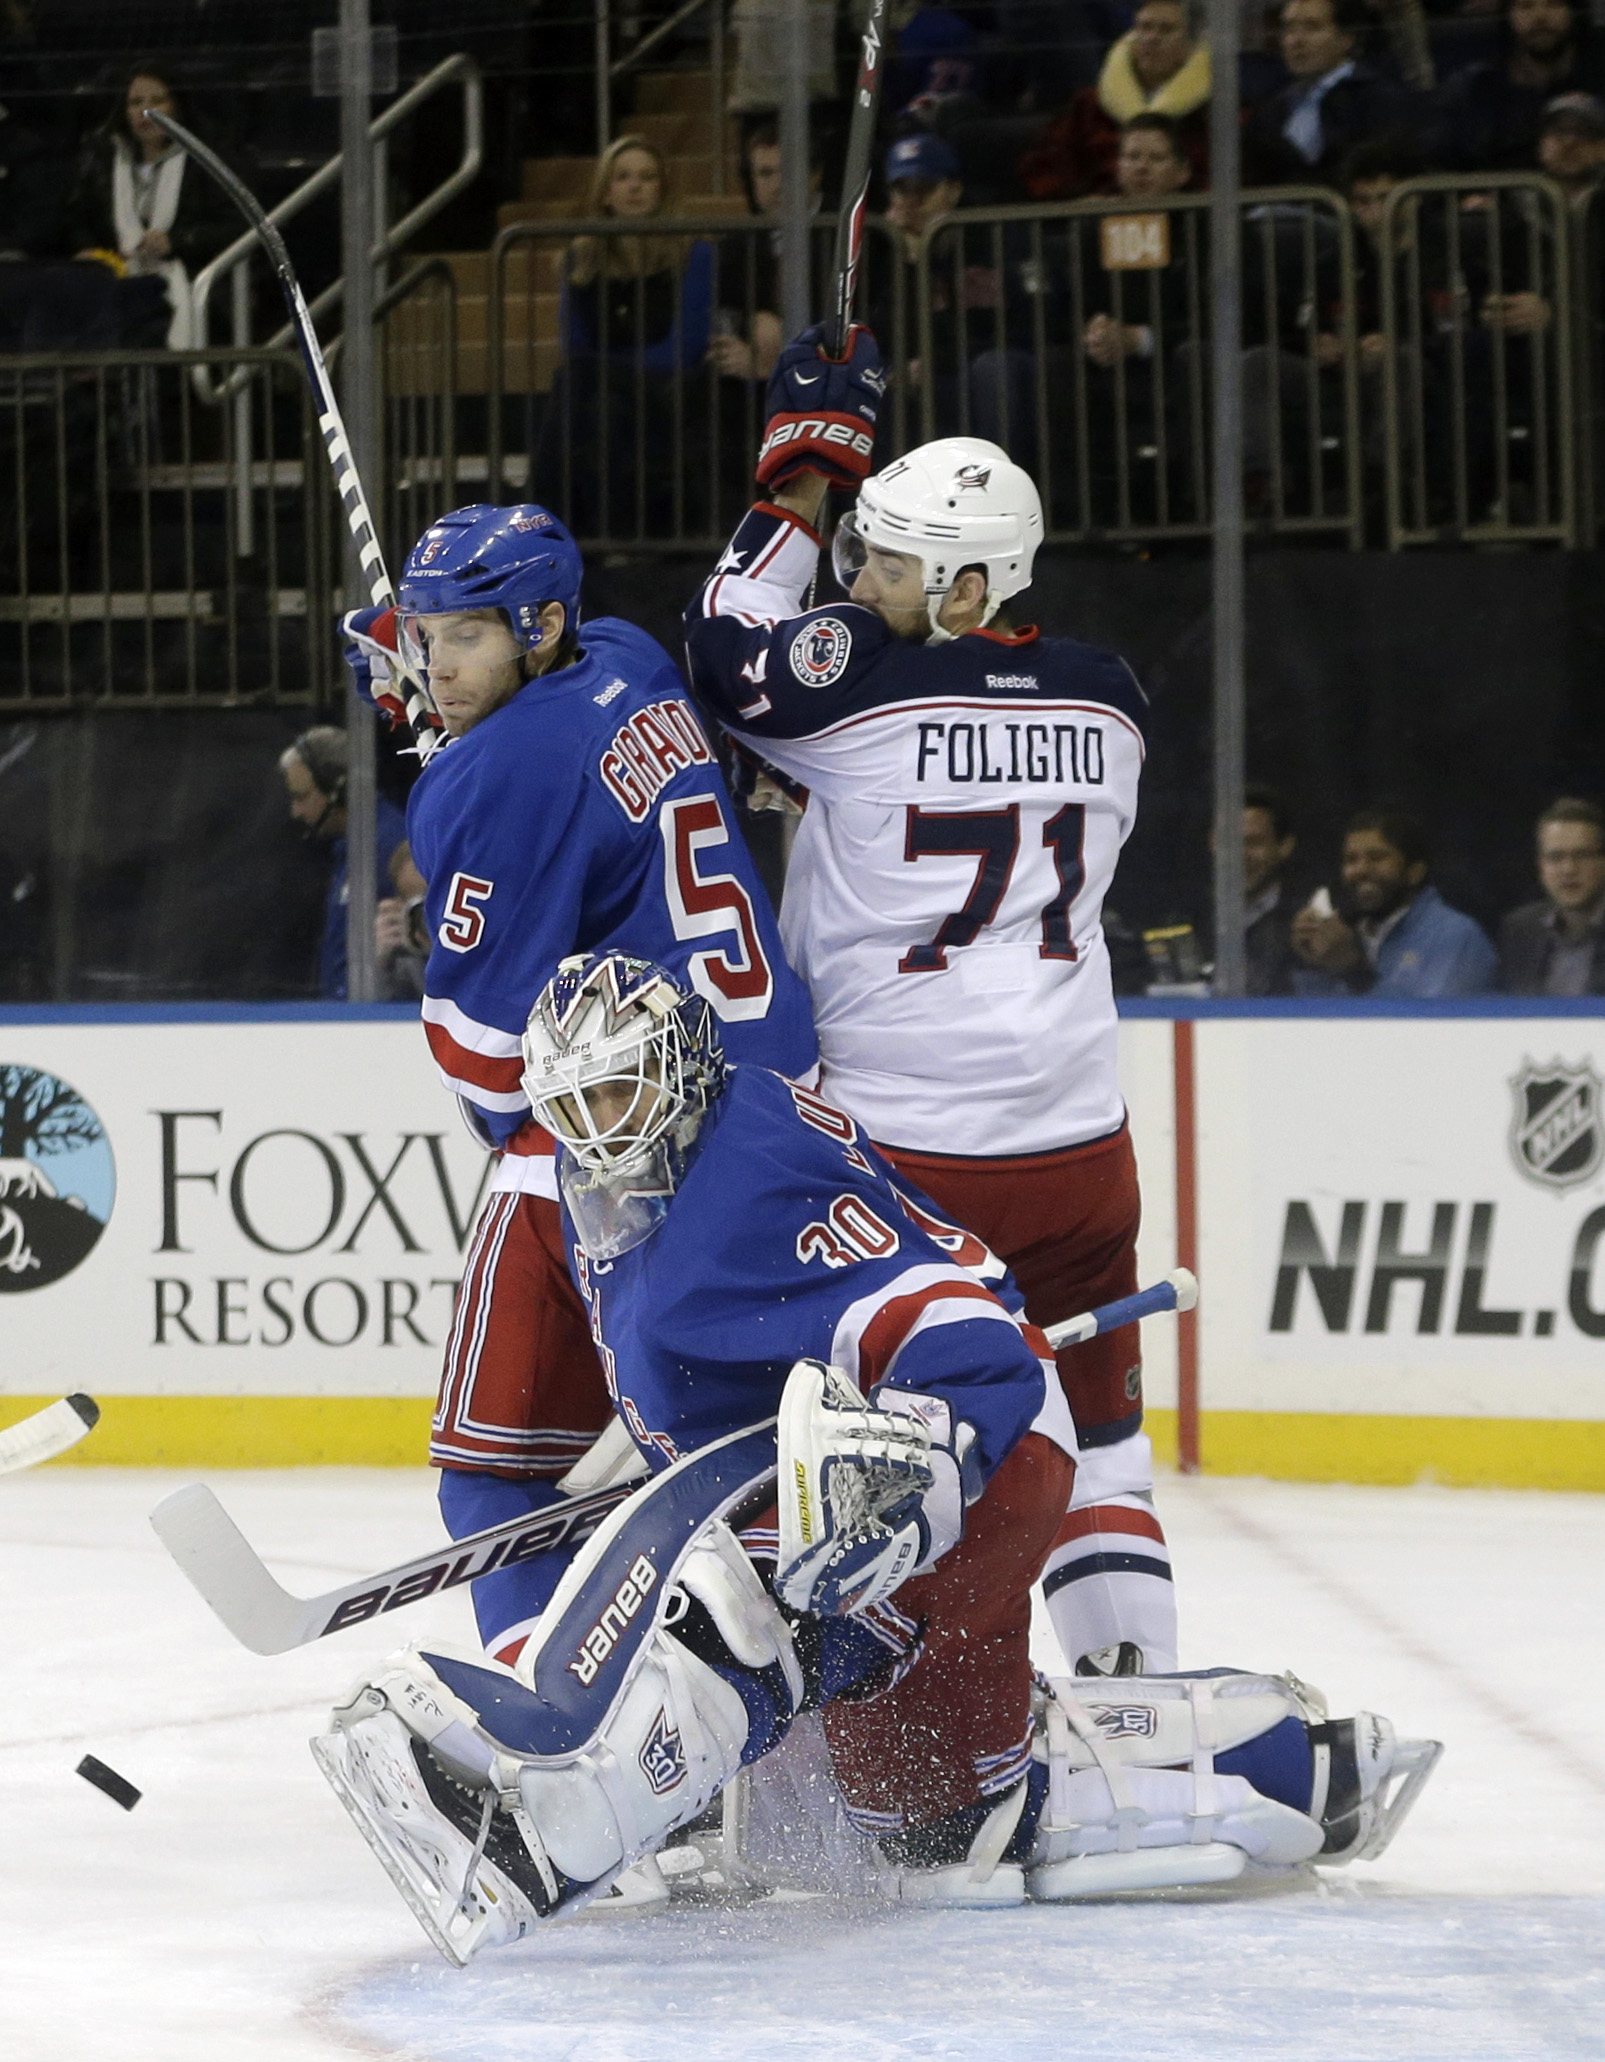 New York Rangers goalie Henrik Lundqvist (30) deflects a shot on the goal as Dan Girardi (5) and Columbus Blue Jackets' Nick Foligno (71) fight for position during the first period of an NHL hockey game, Monday, Jan. 6, 2014, in New York